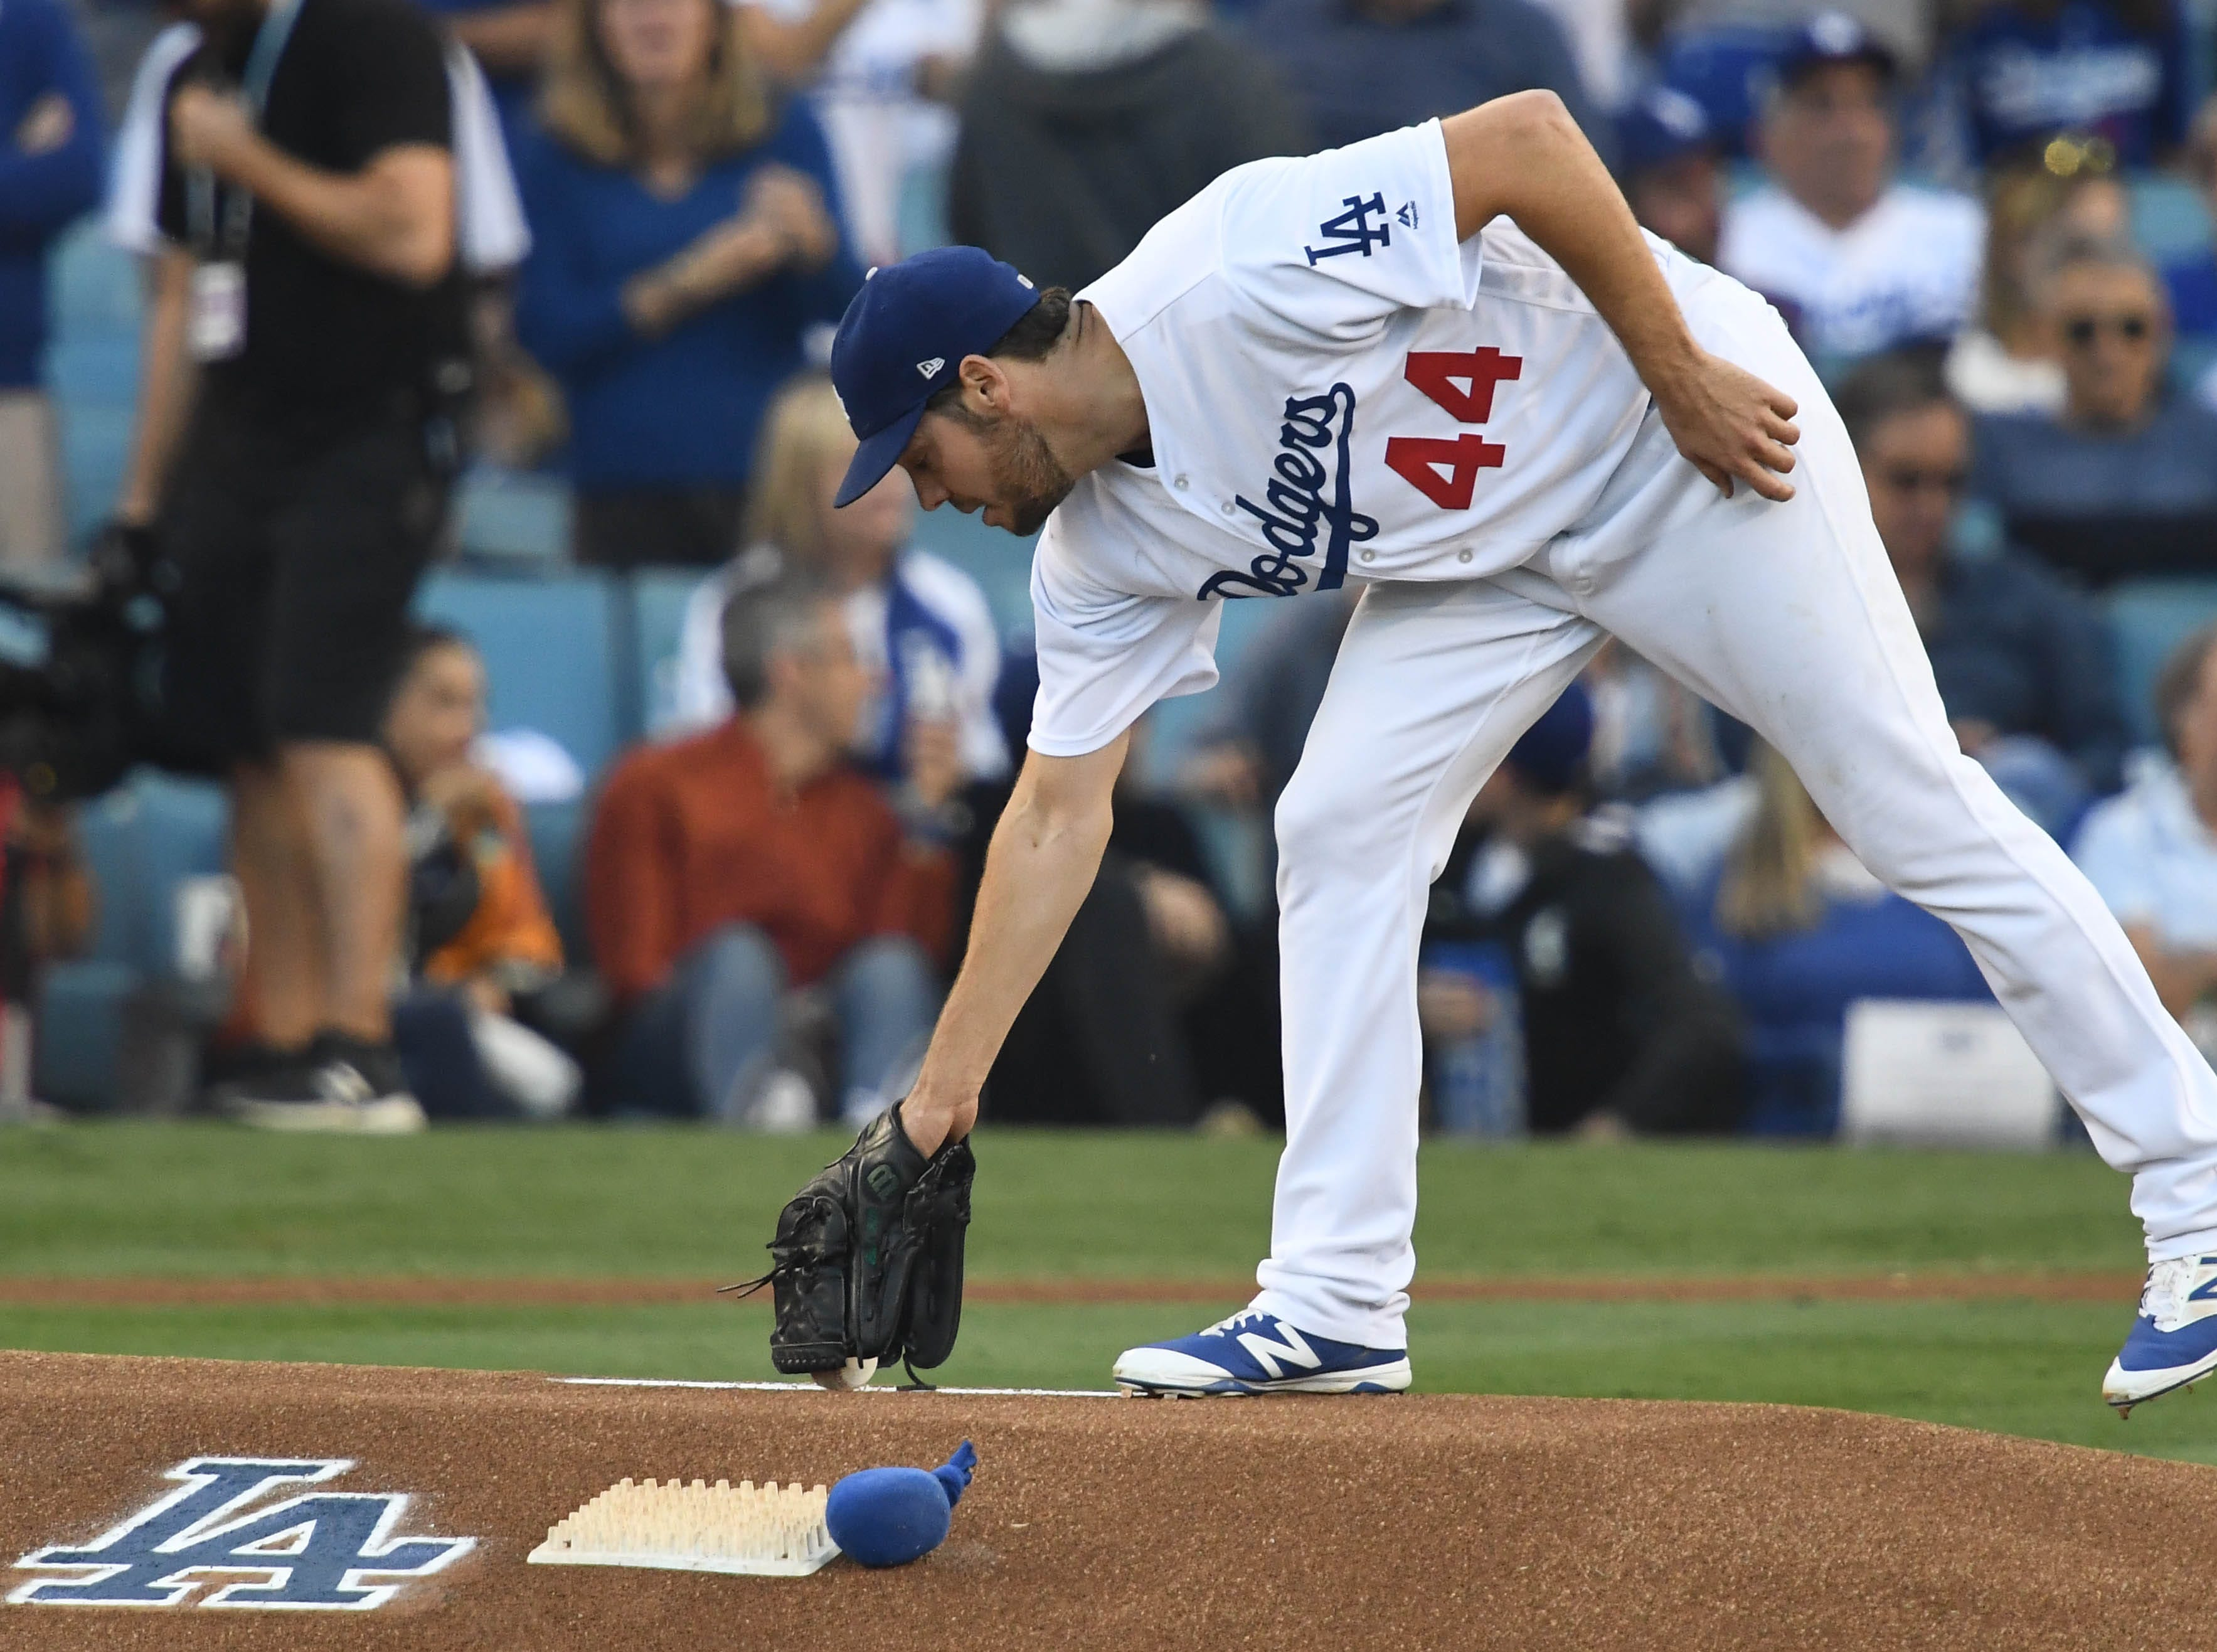 Game 4 at Dodger Stadium: Rich HIll takes the mound in the first inning.